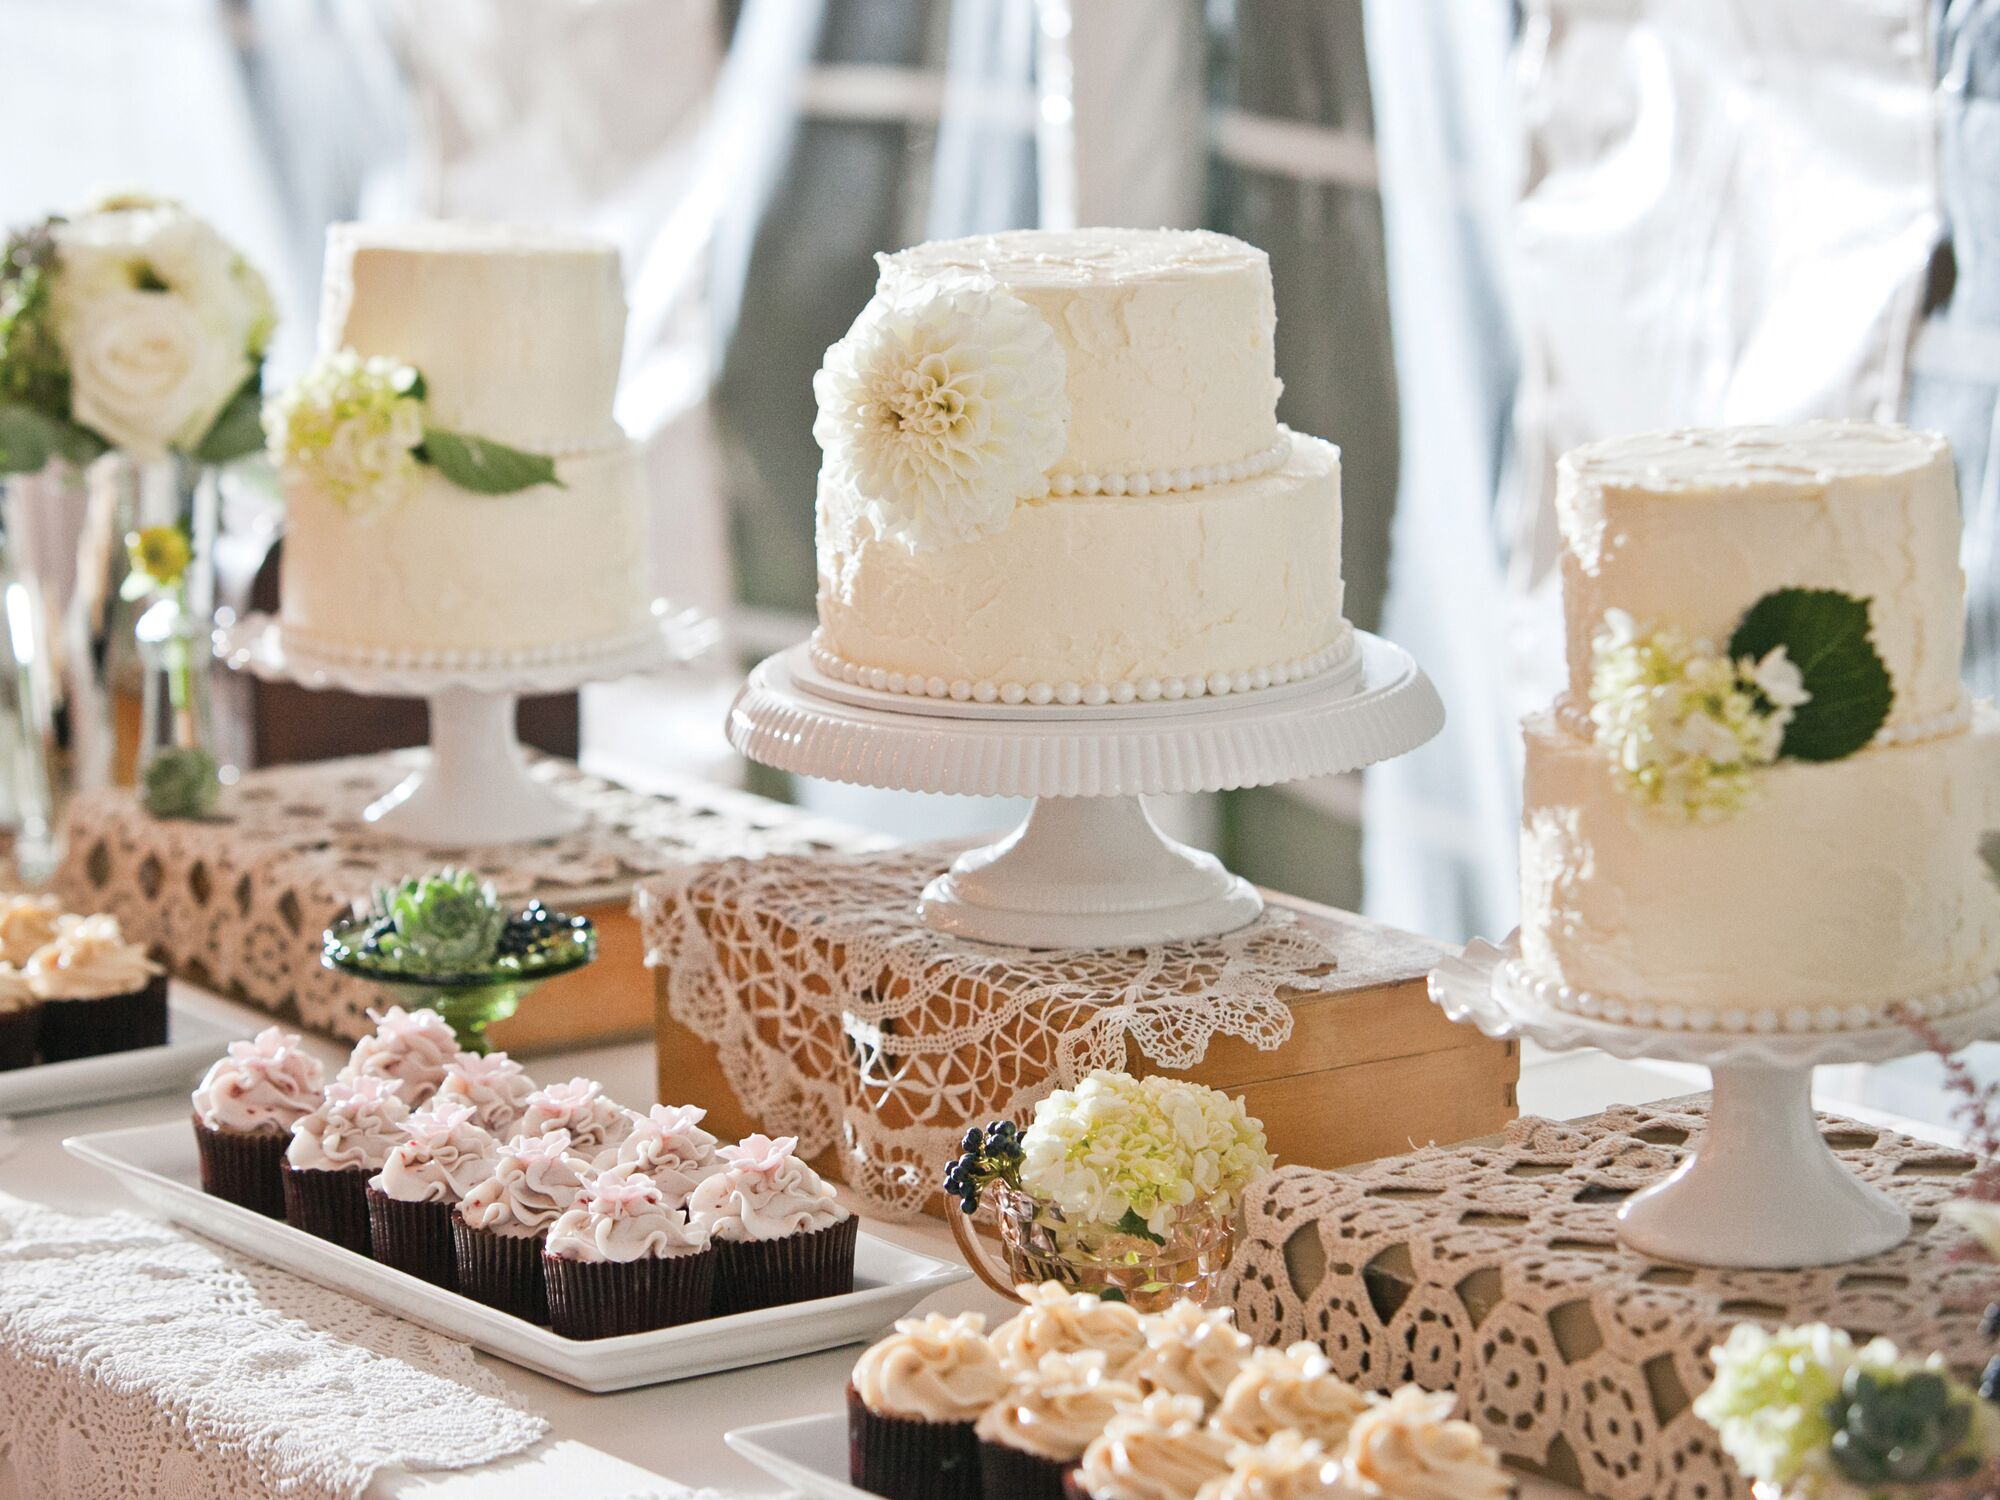 Wedding Cake Contracts 101